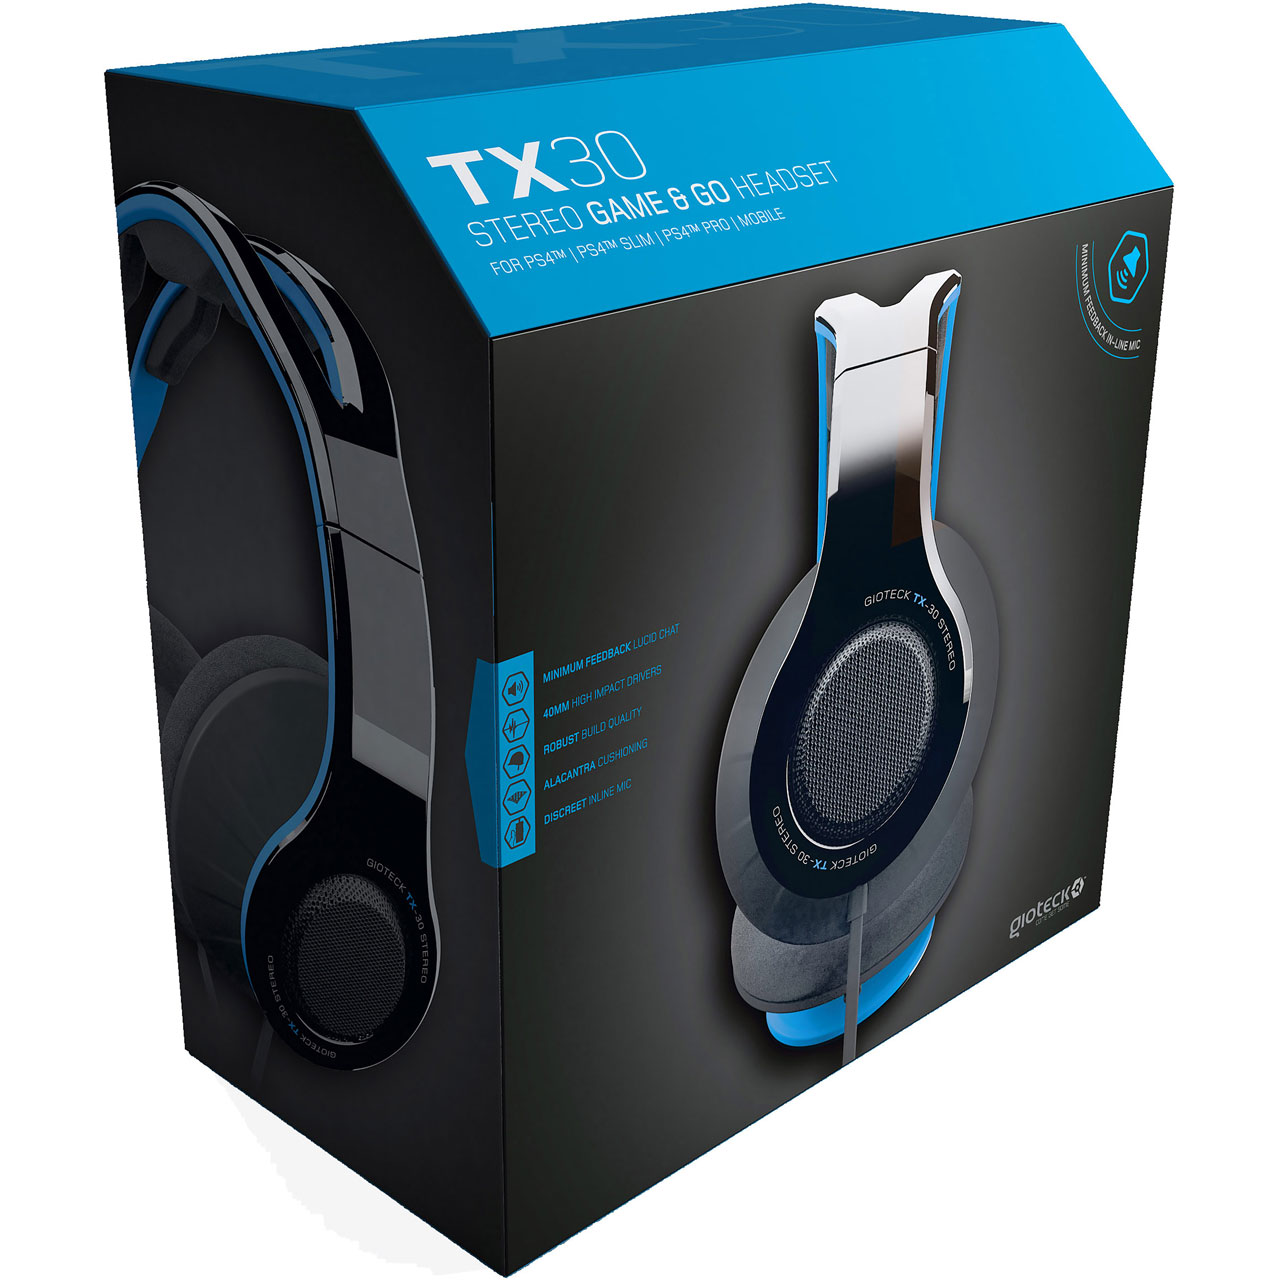 TX 30 Stereo Gaming & Go Headset (PS4